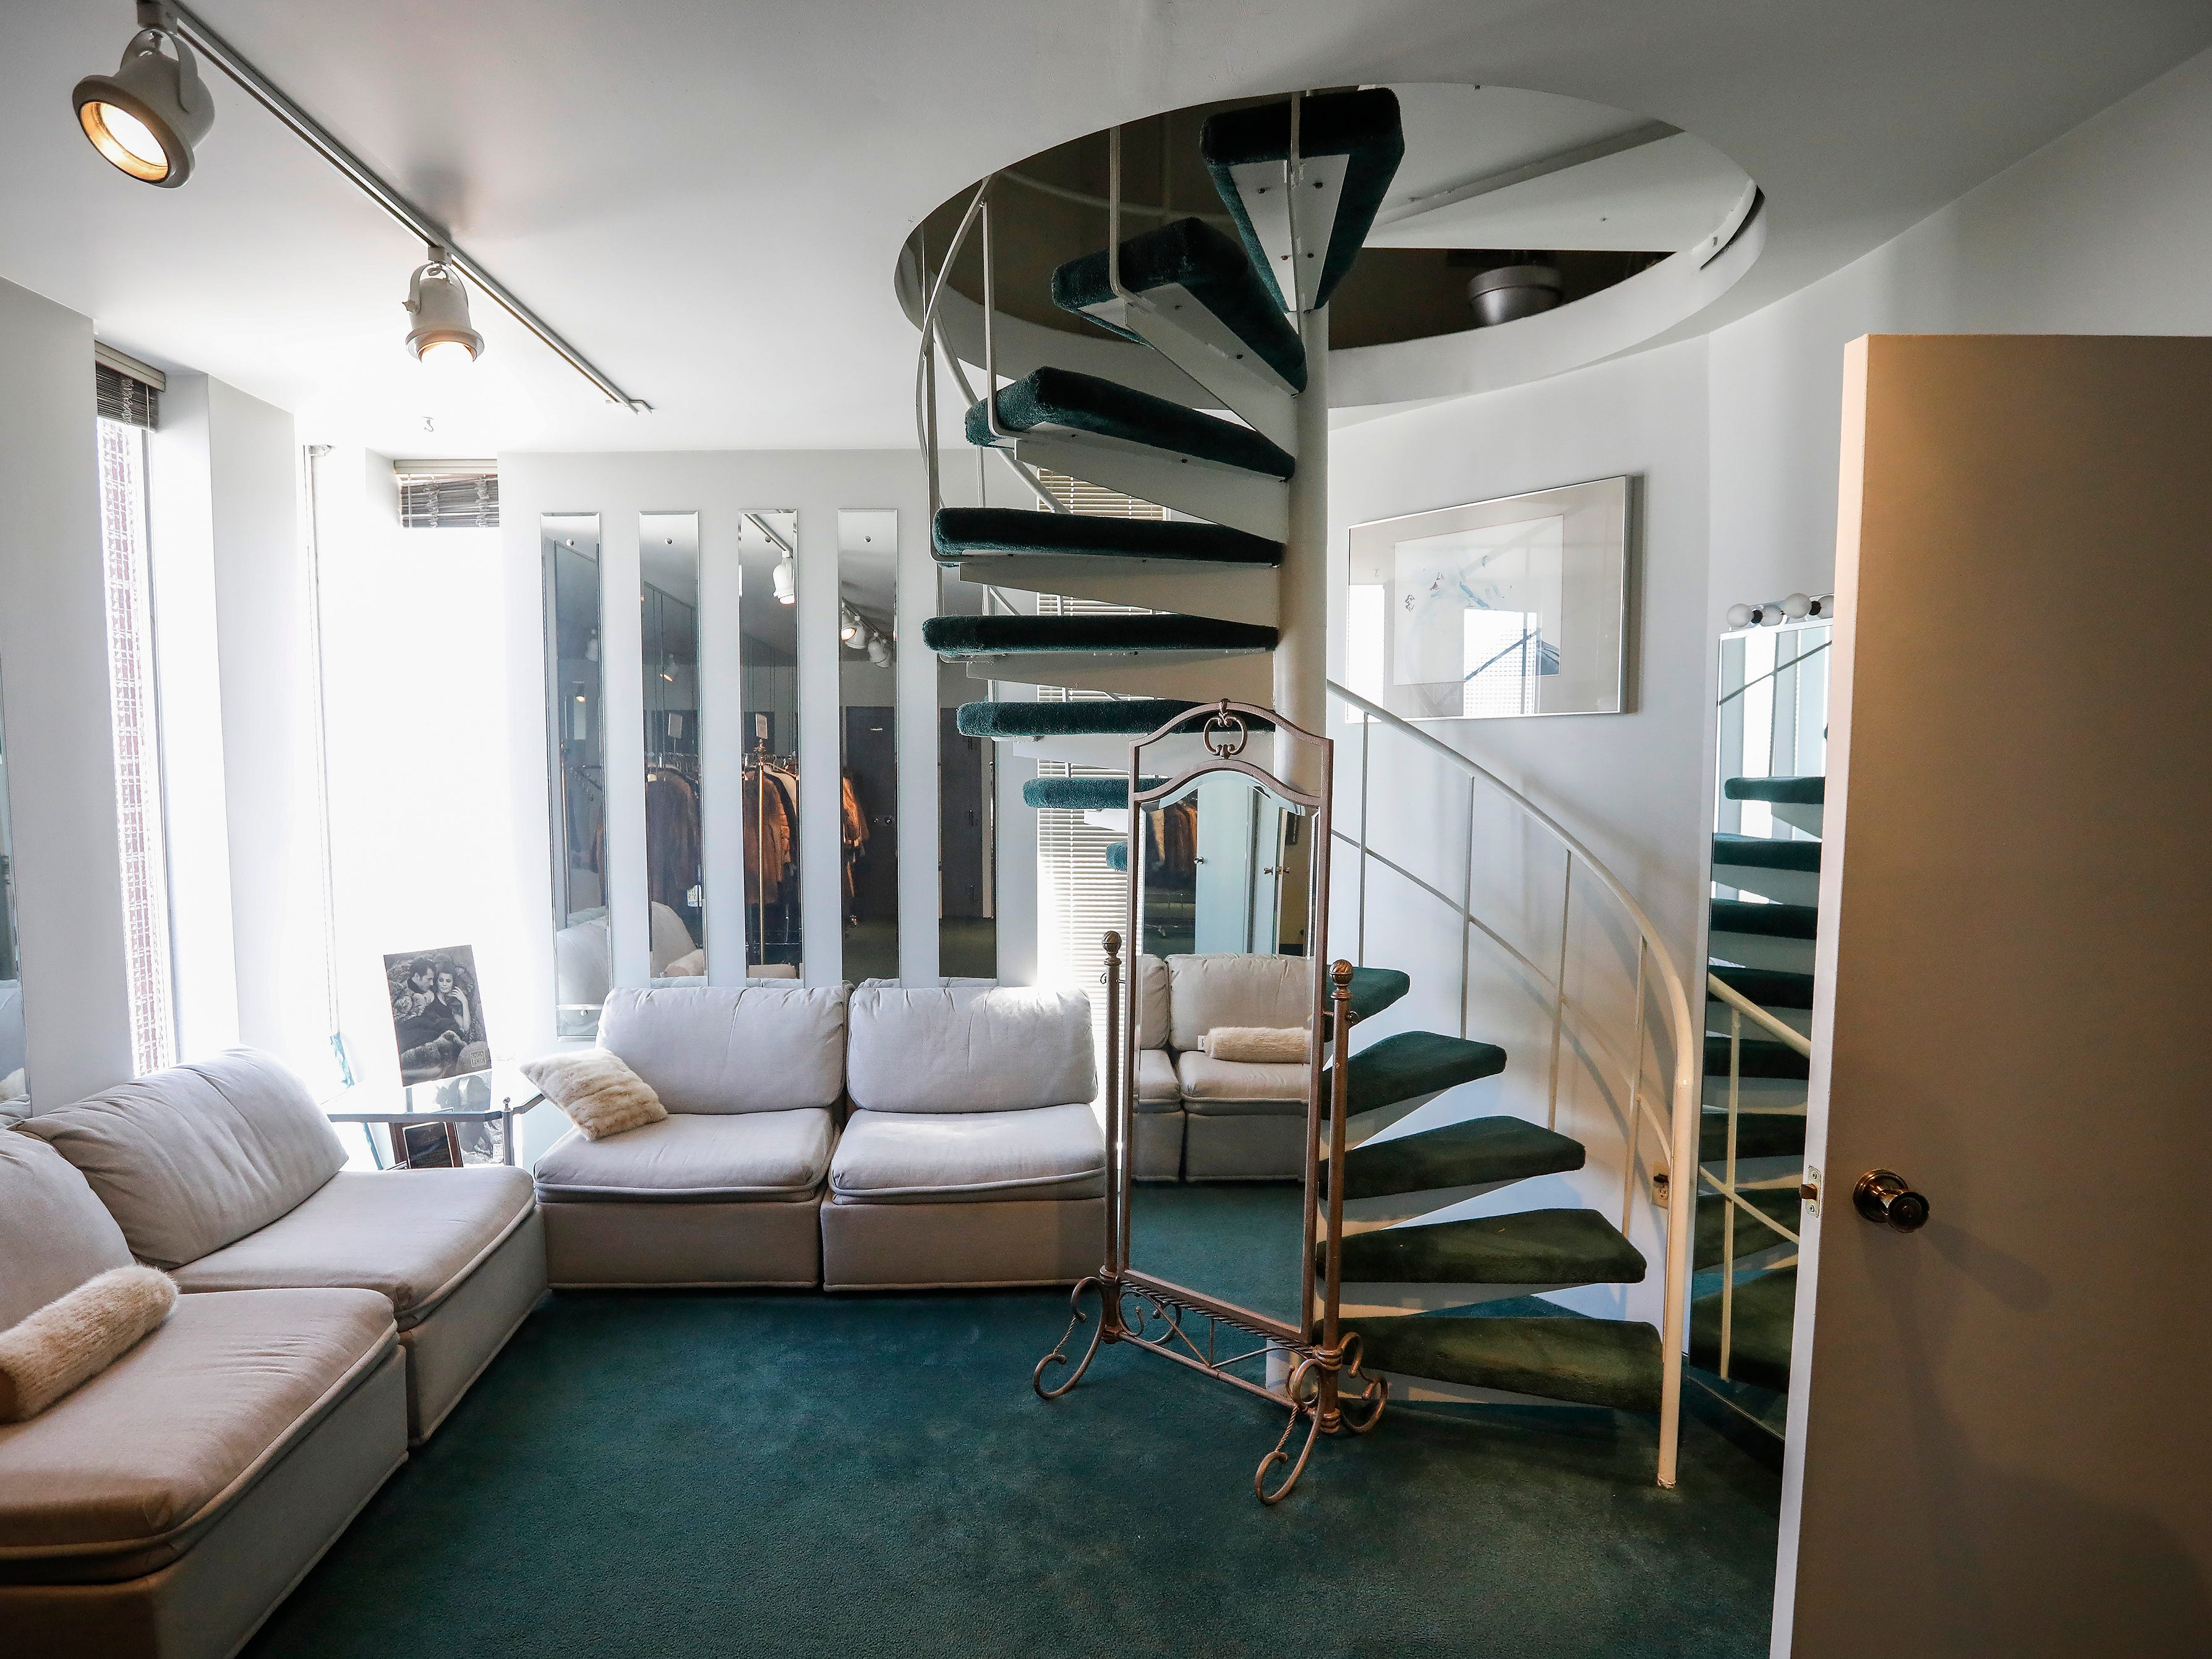 A spiral staircase leads up to the second floor at McDaniel Furs, located at 901 S. Glenstone Ave.